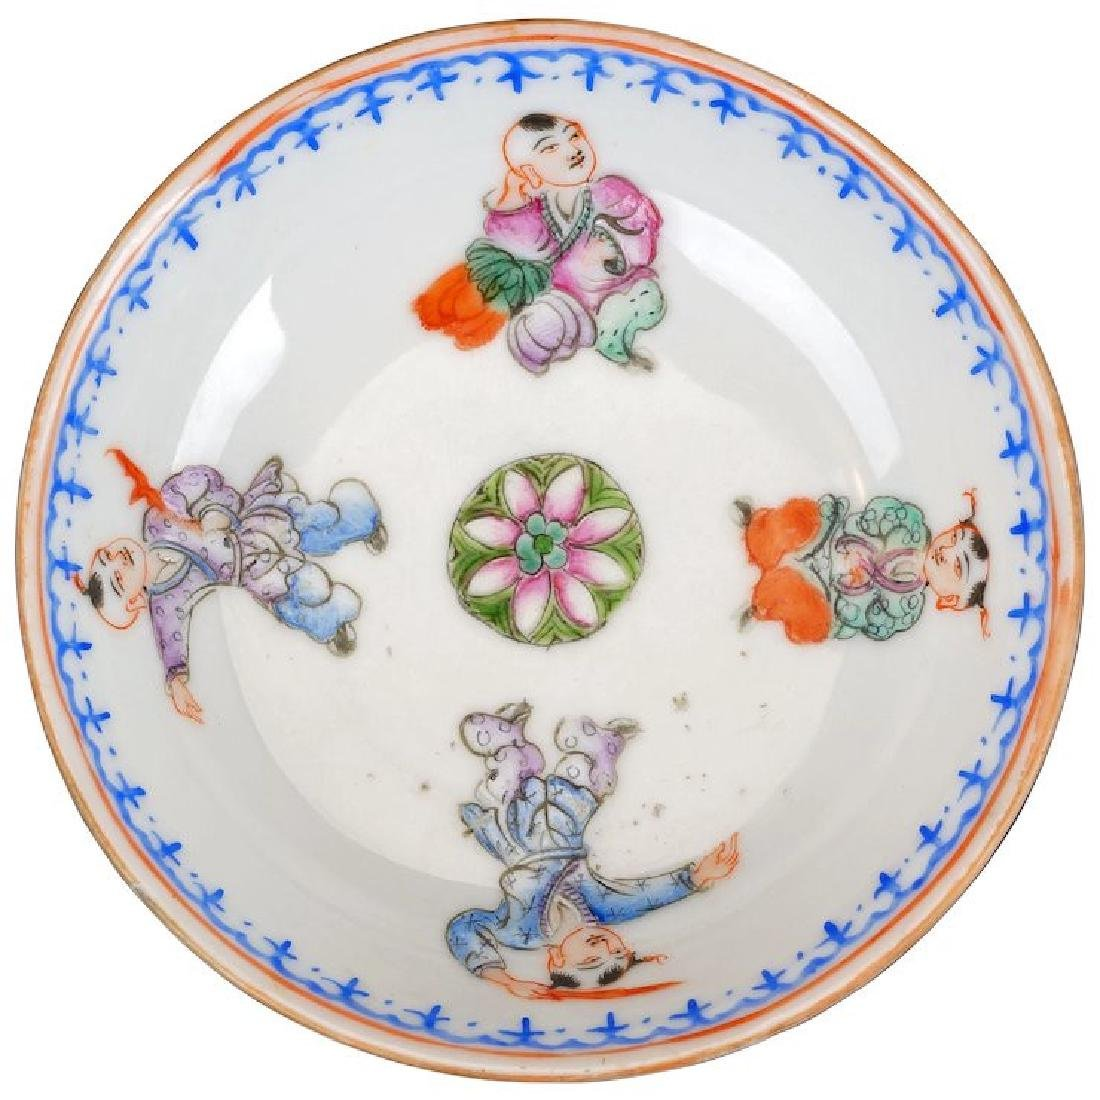 Chinese over glaze enamel porcelain saucer with four